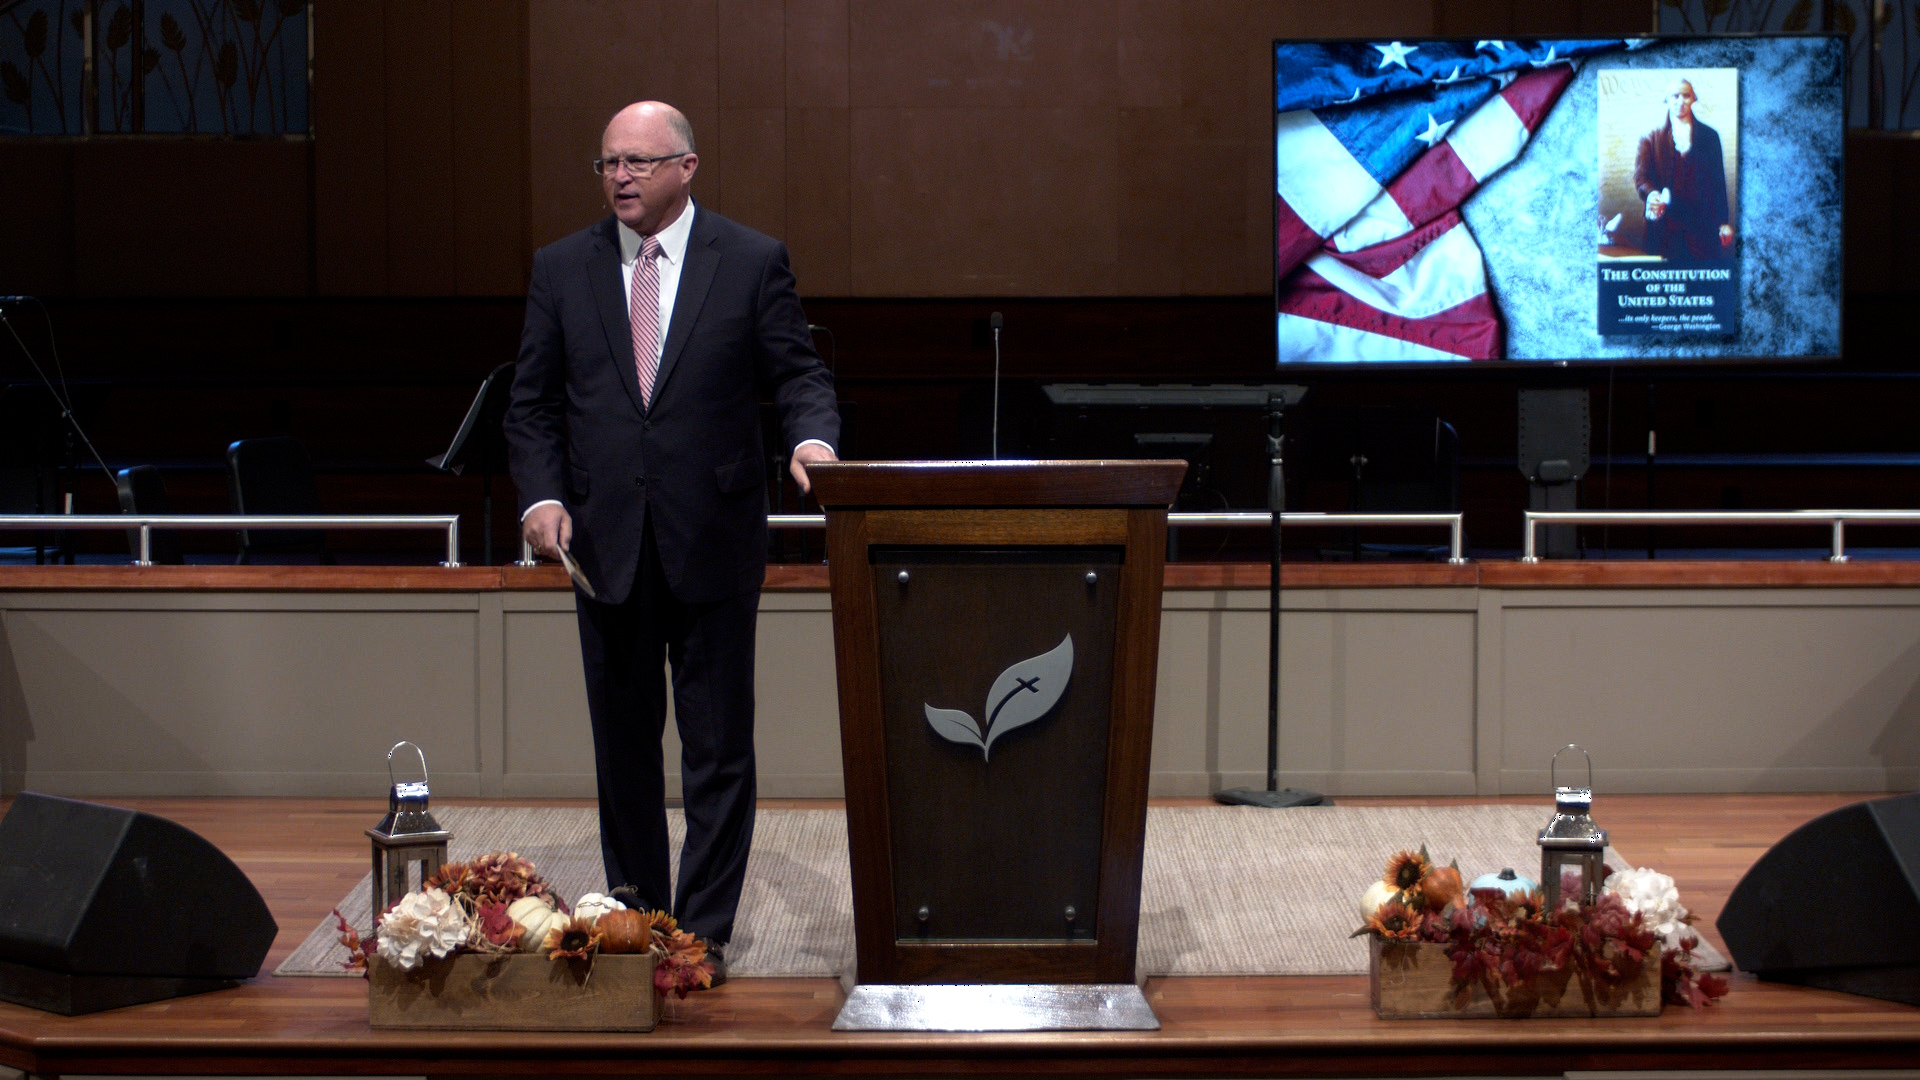 Pastor Paul Chappell: Church Is Essential